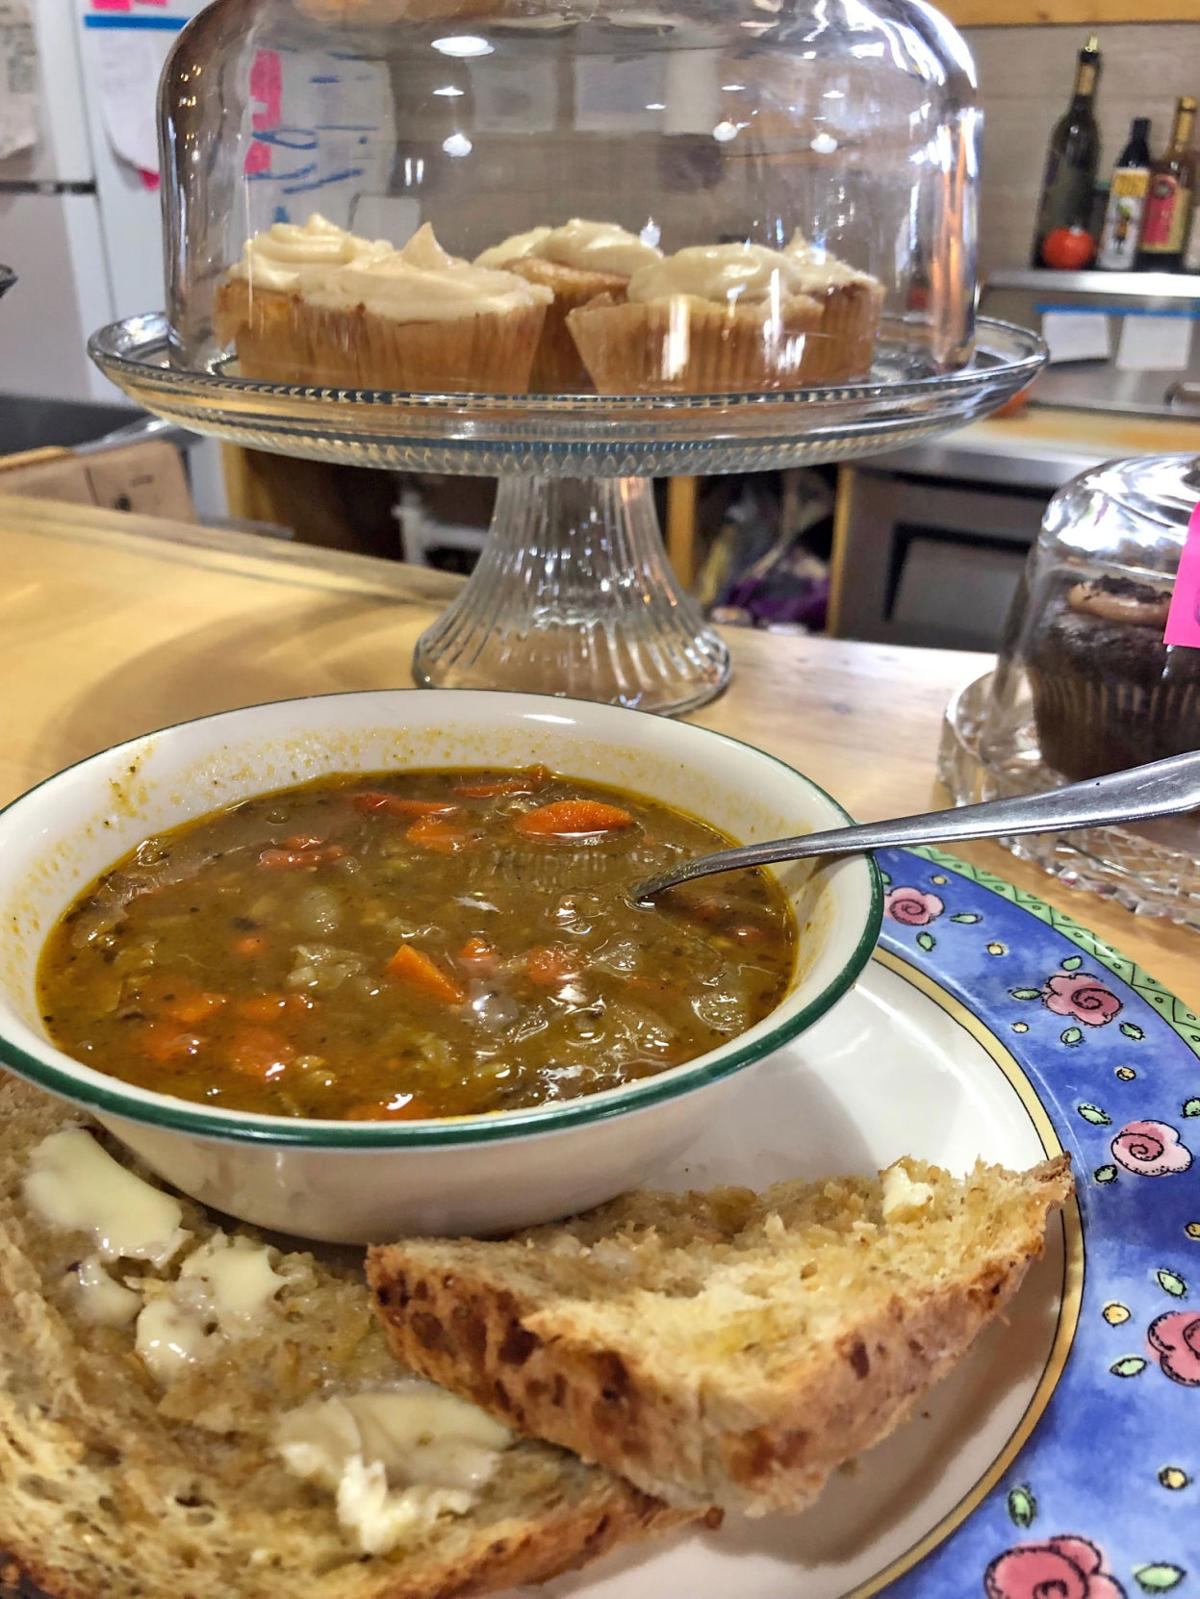 Soup and a slice